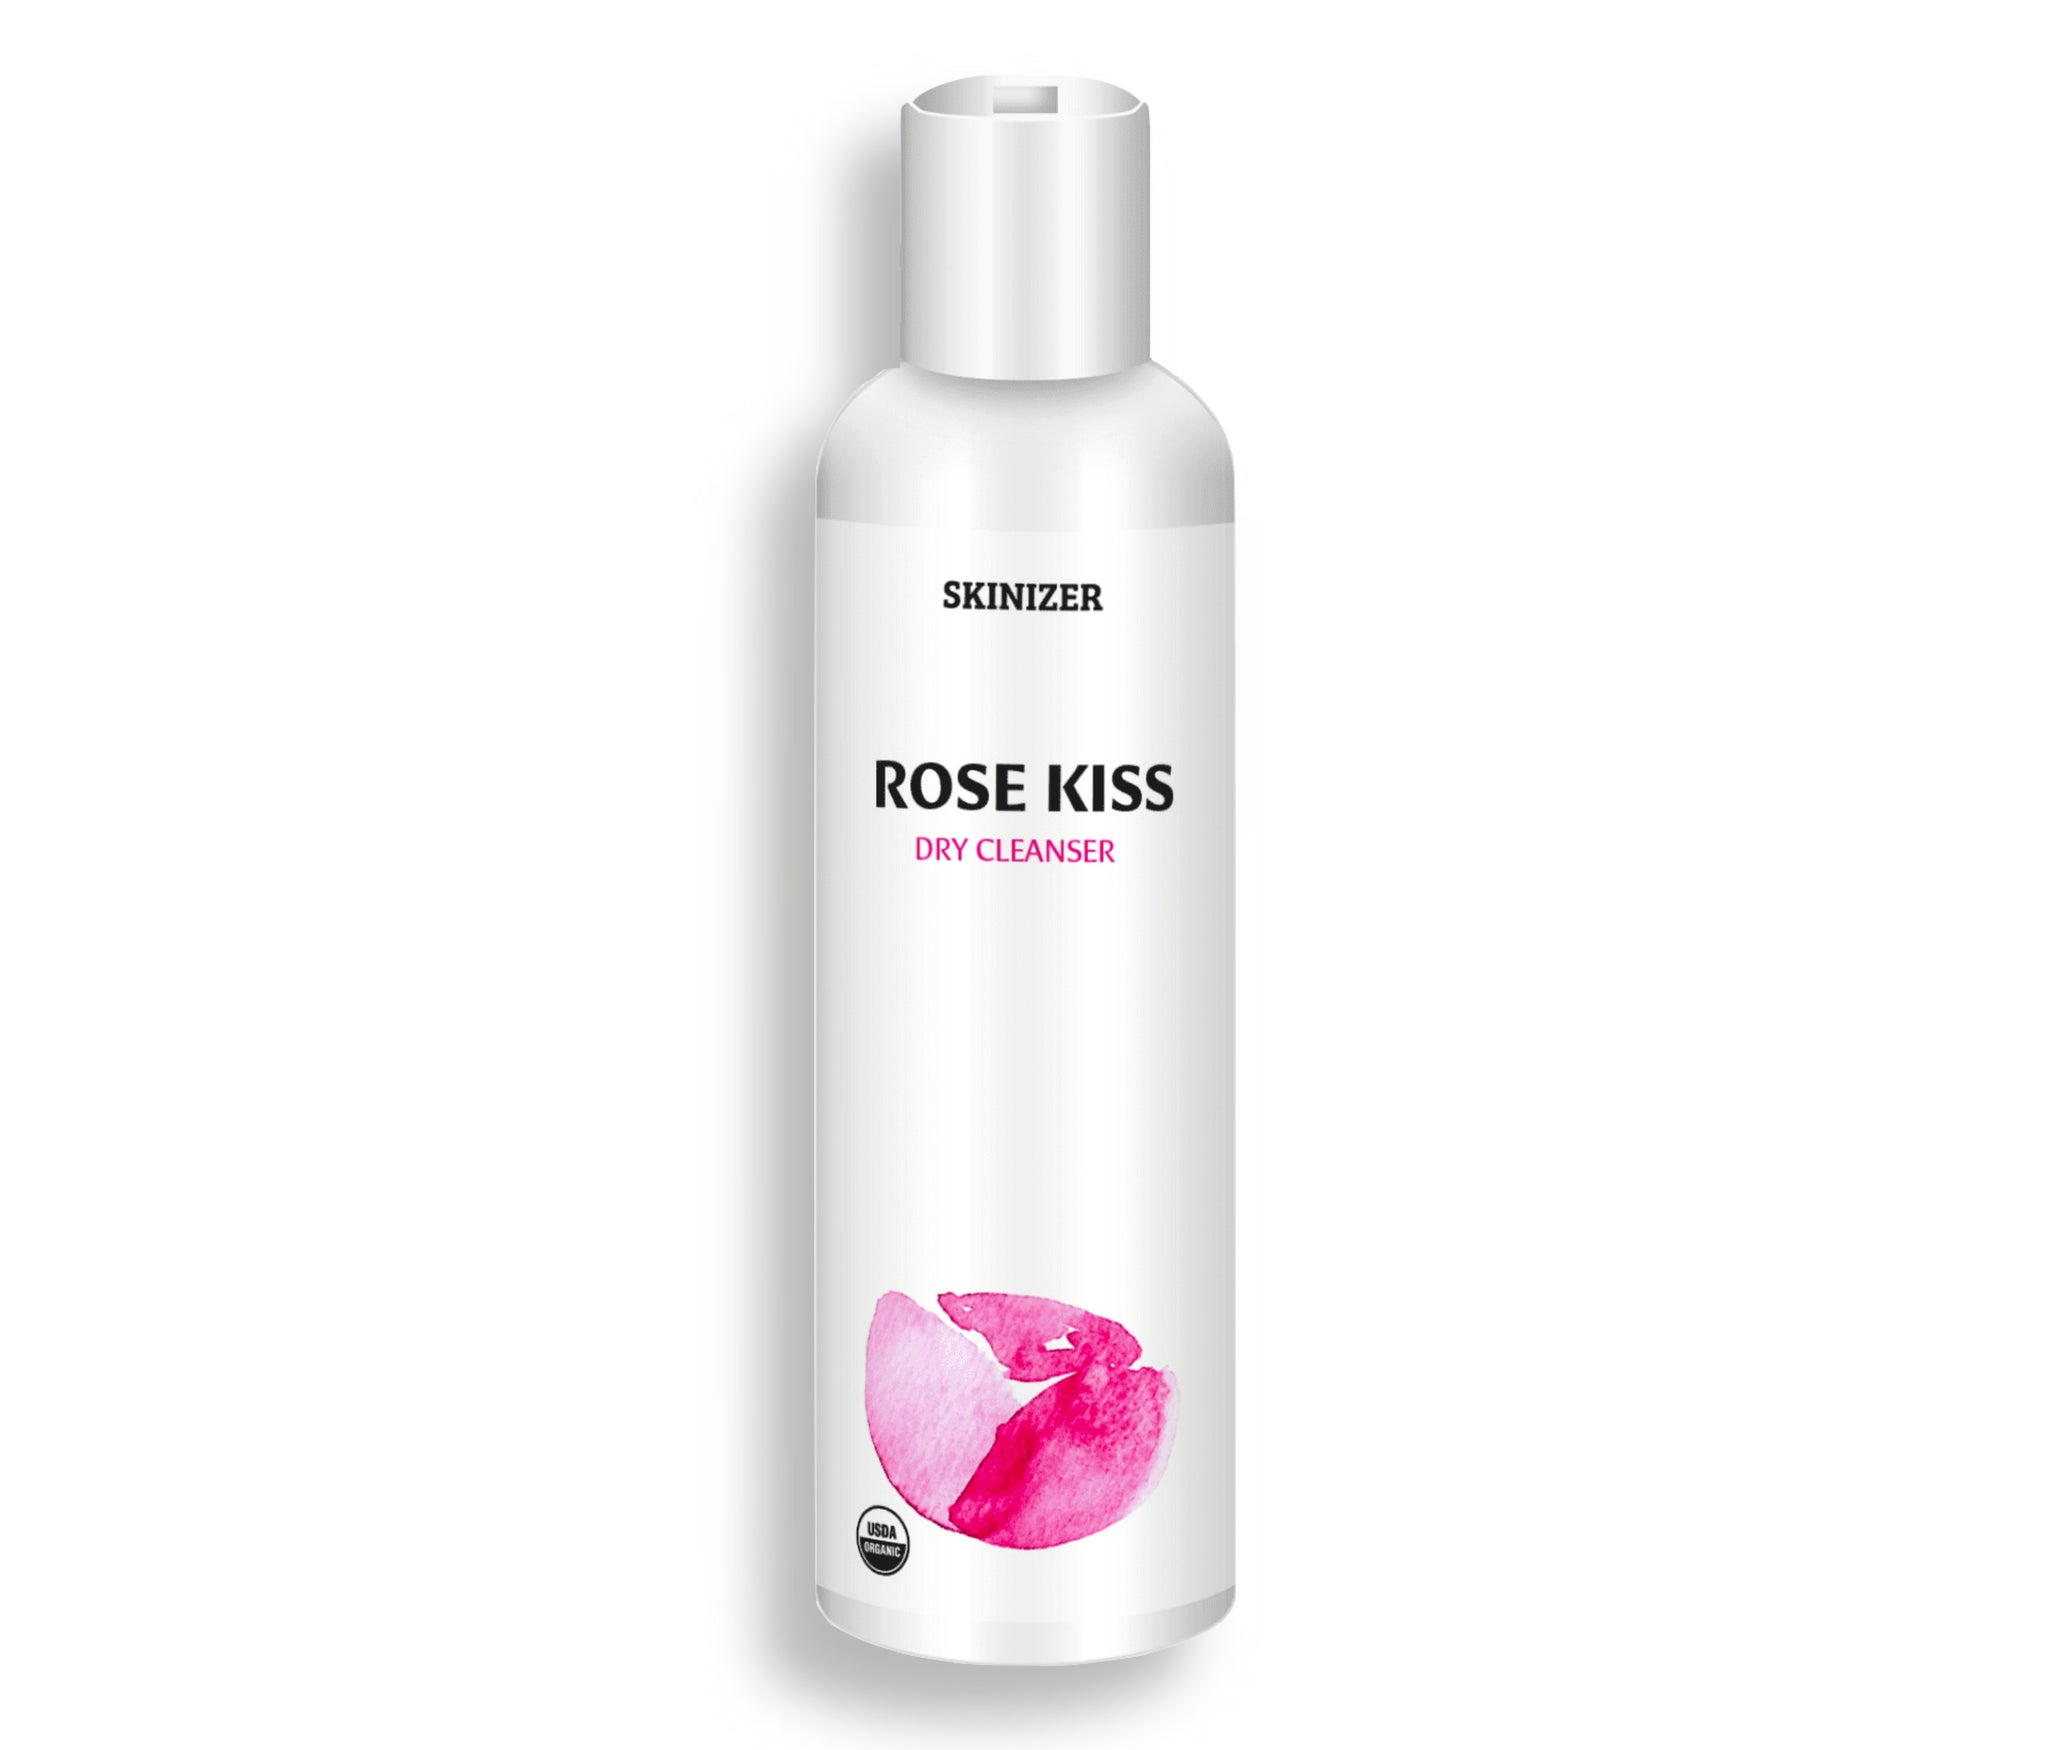 Rose Kiss Dry Cleanser